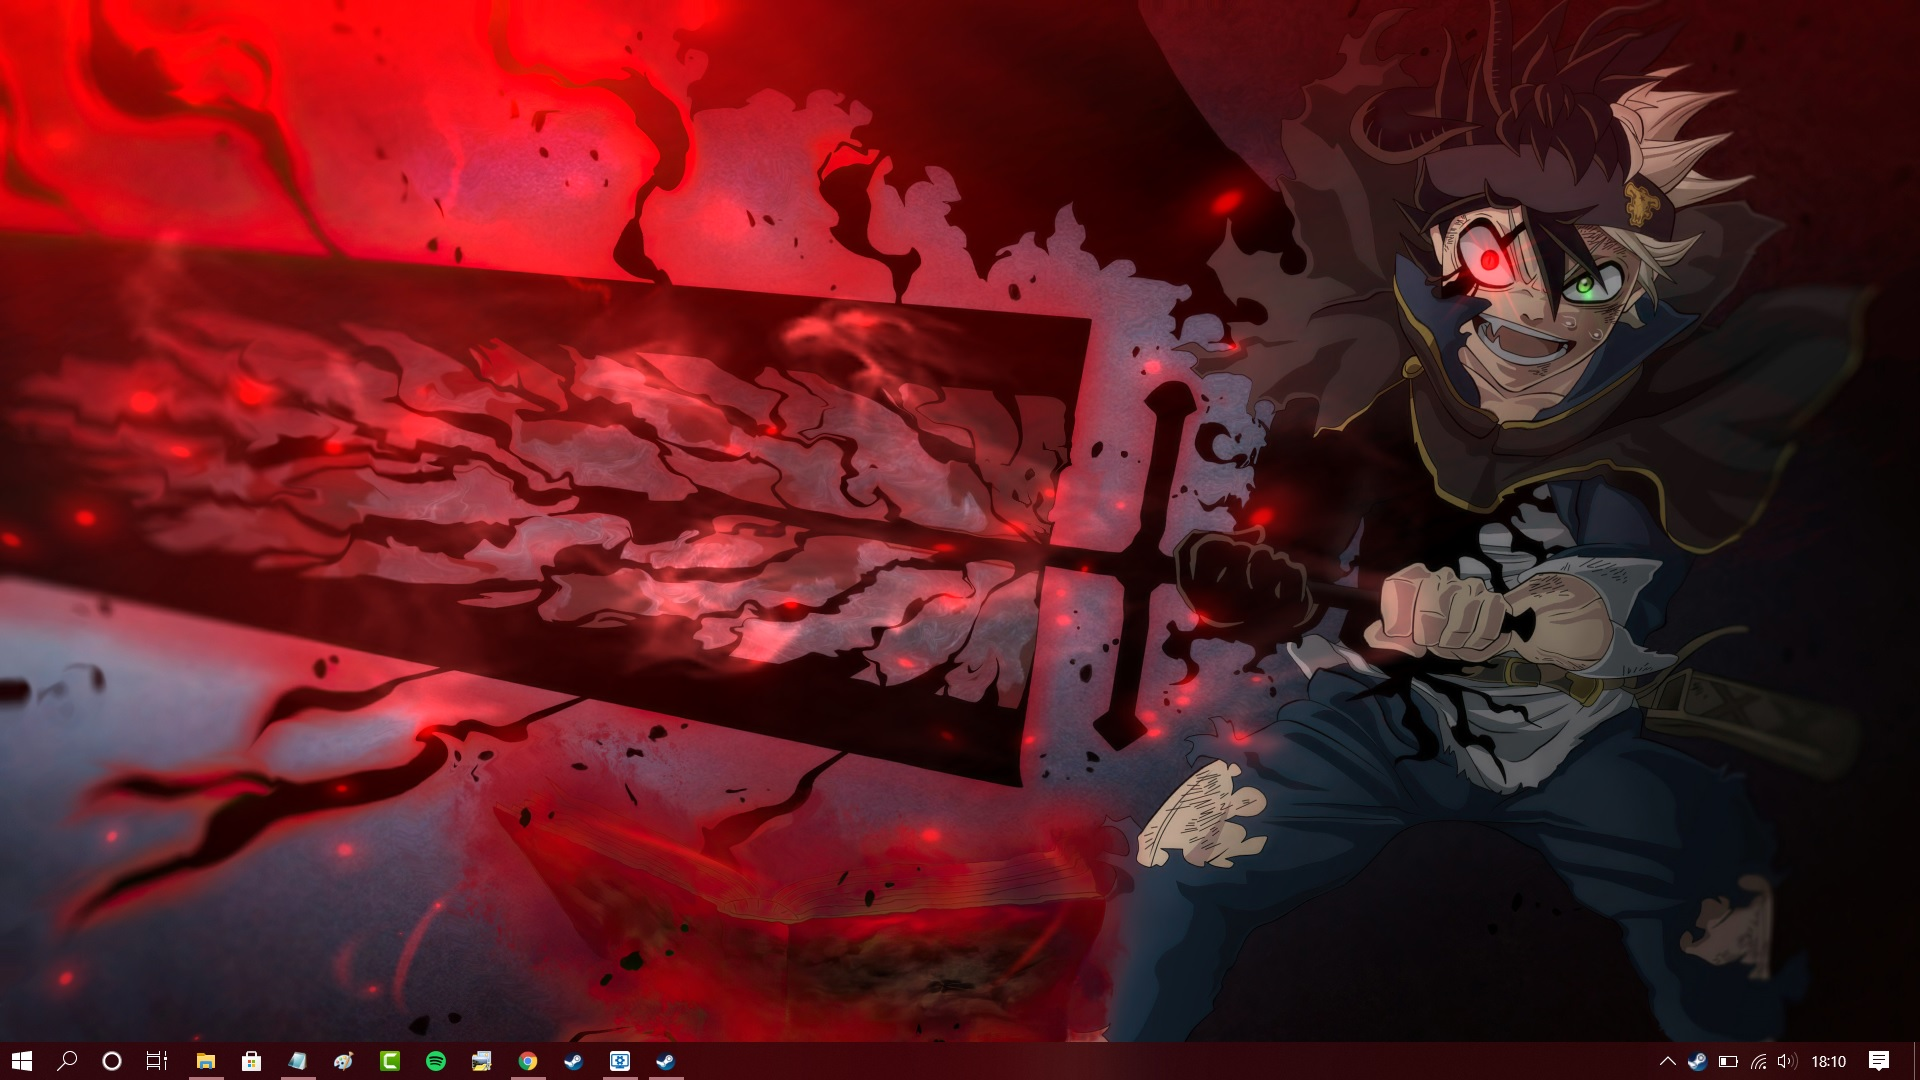 Black Clover Live Wallpaper Android and Desktop/PC